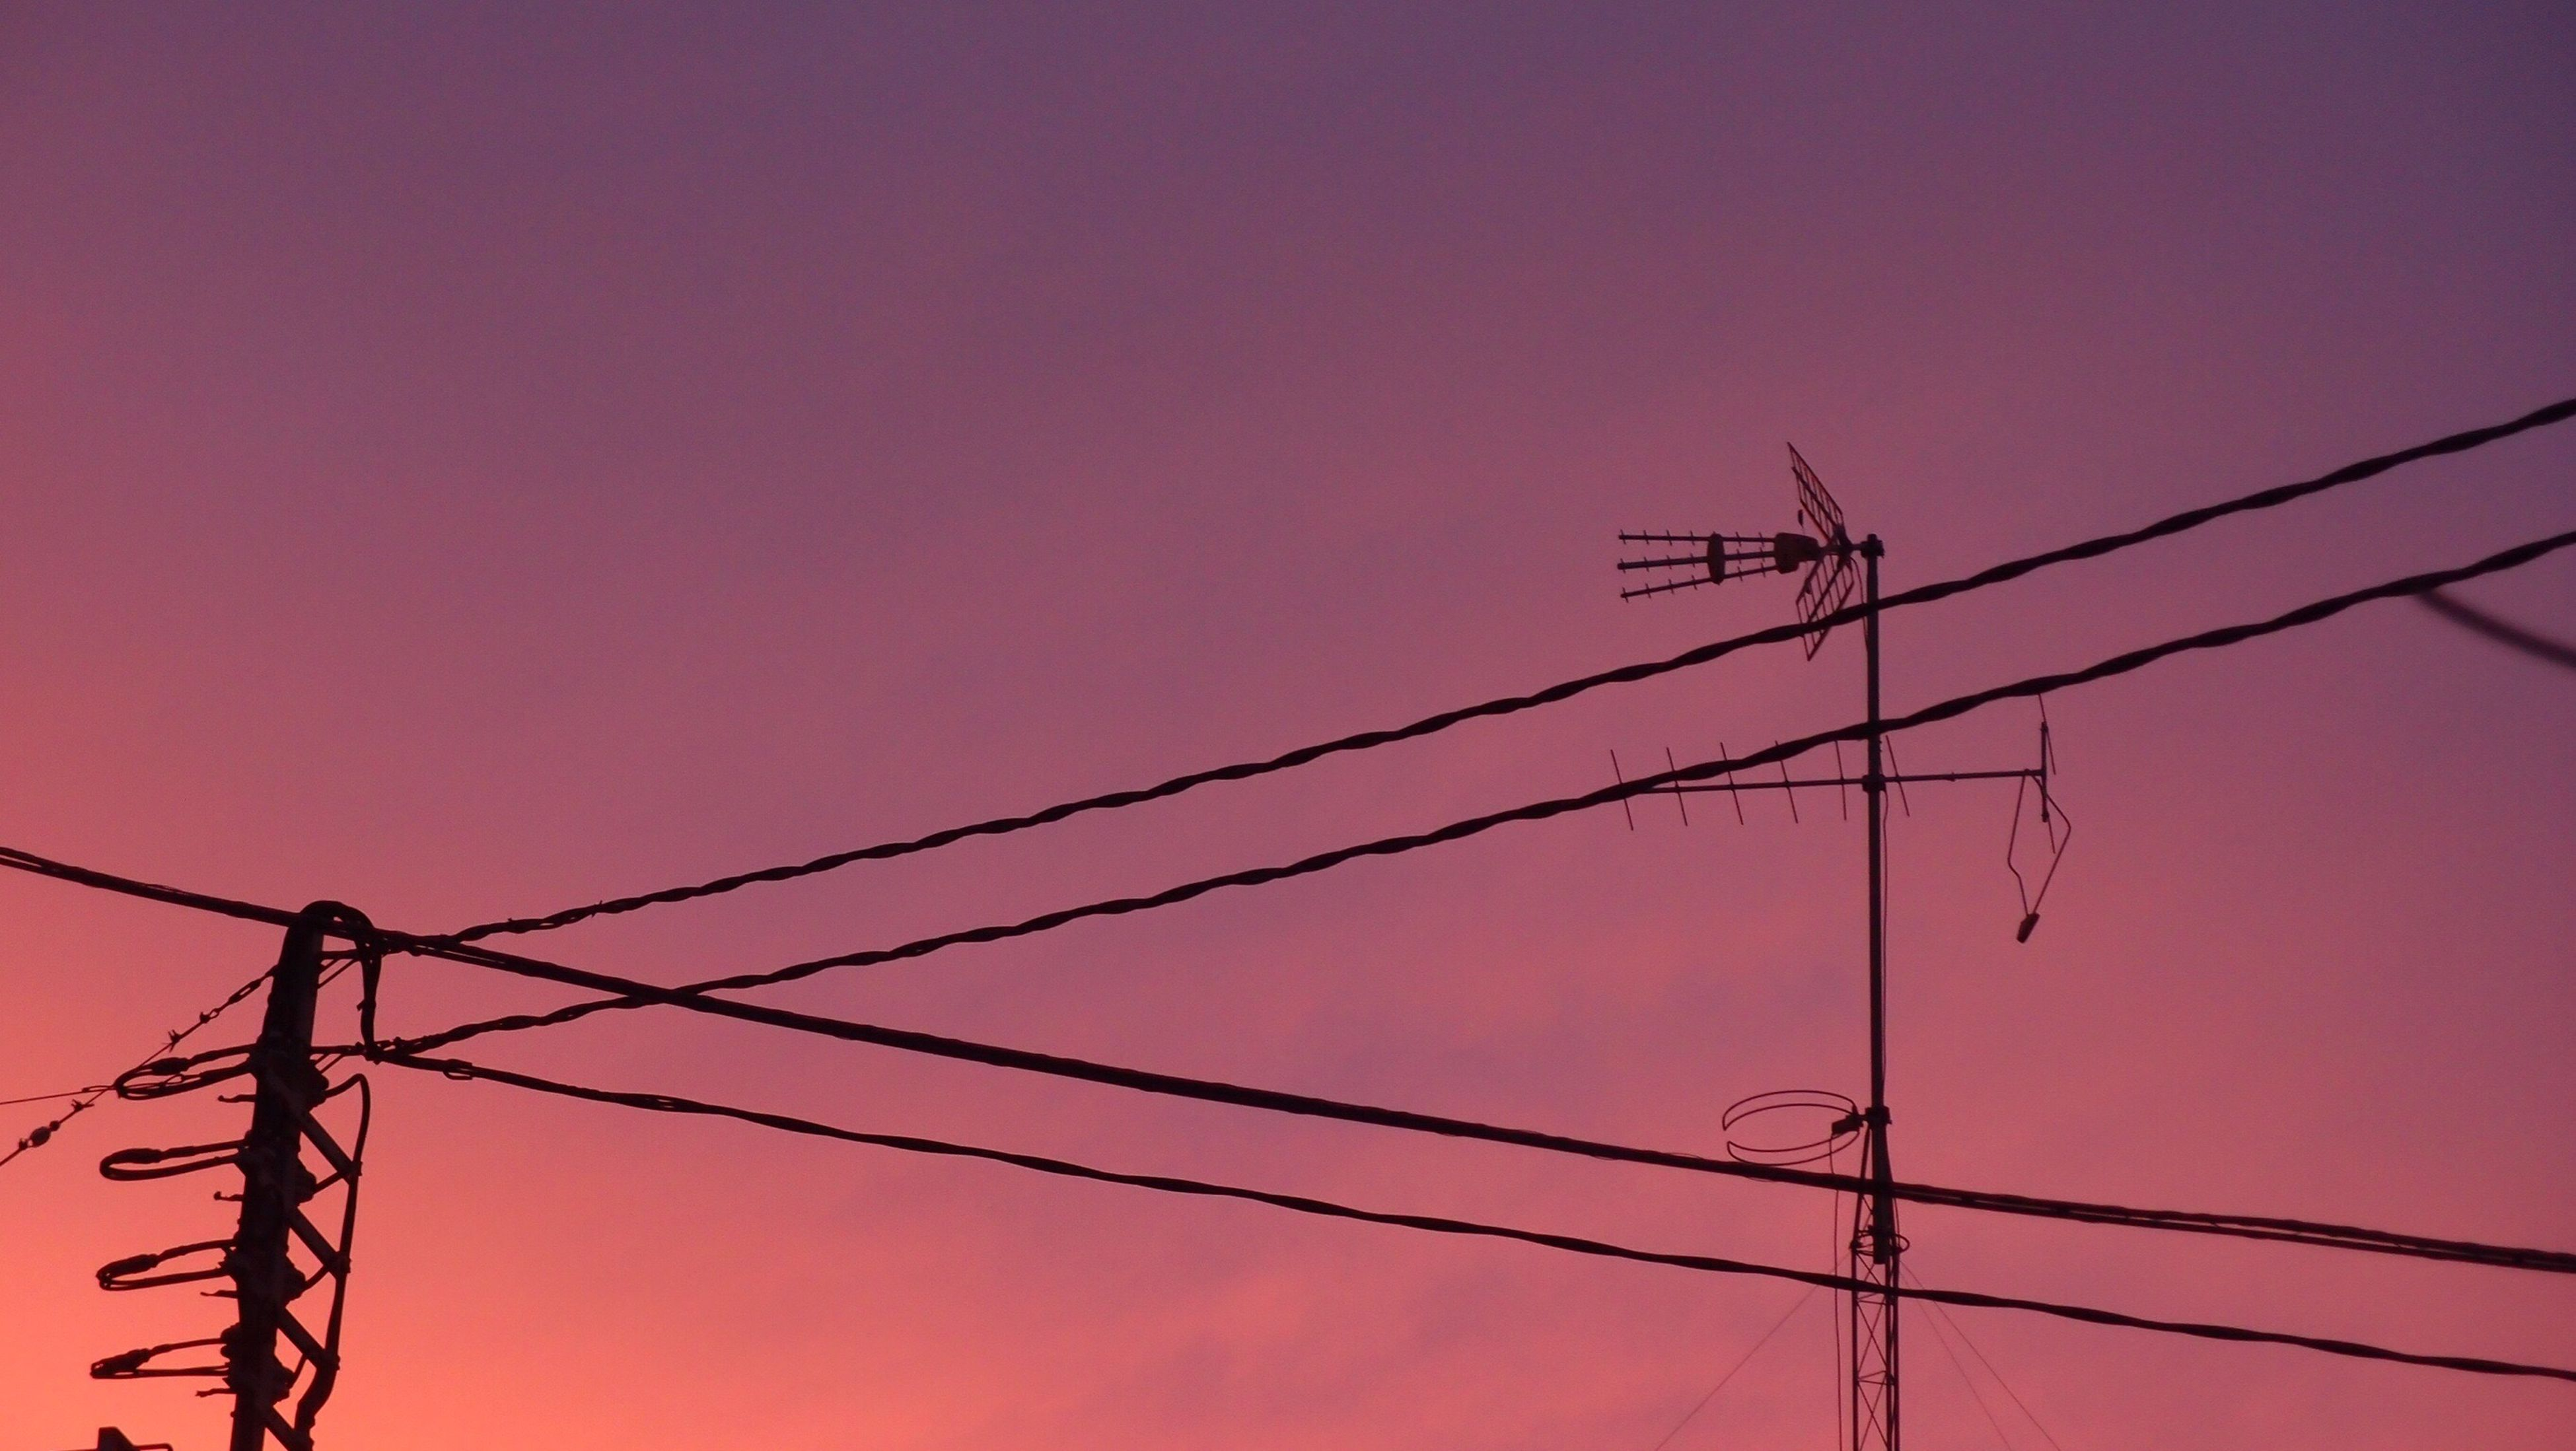 power line, power supply, electricity, electricity pylon, low angle view, connection, cable, fuel and power generation, technology, clear sky, power cable, silhouette, copy space, complexity, sunset, sky, dusk, outdoors, no people, wire